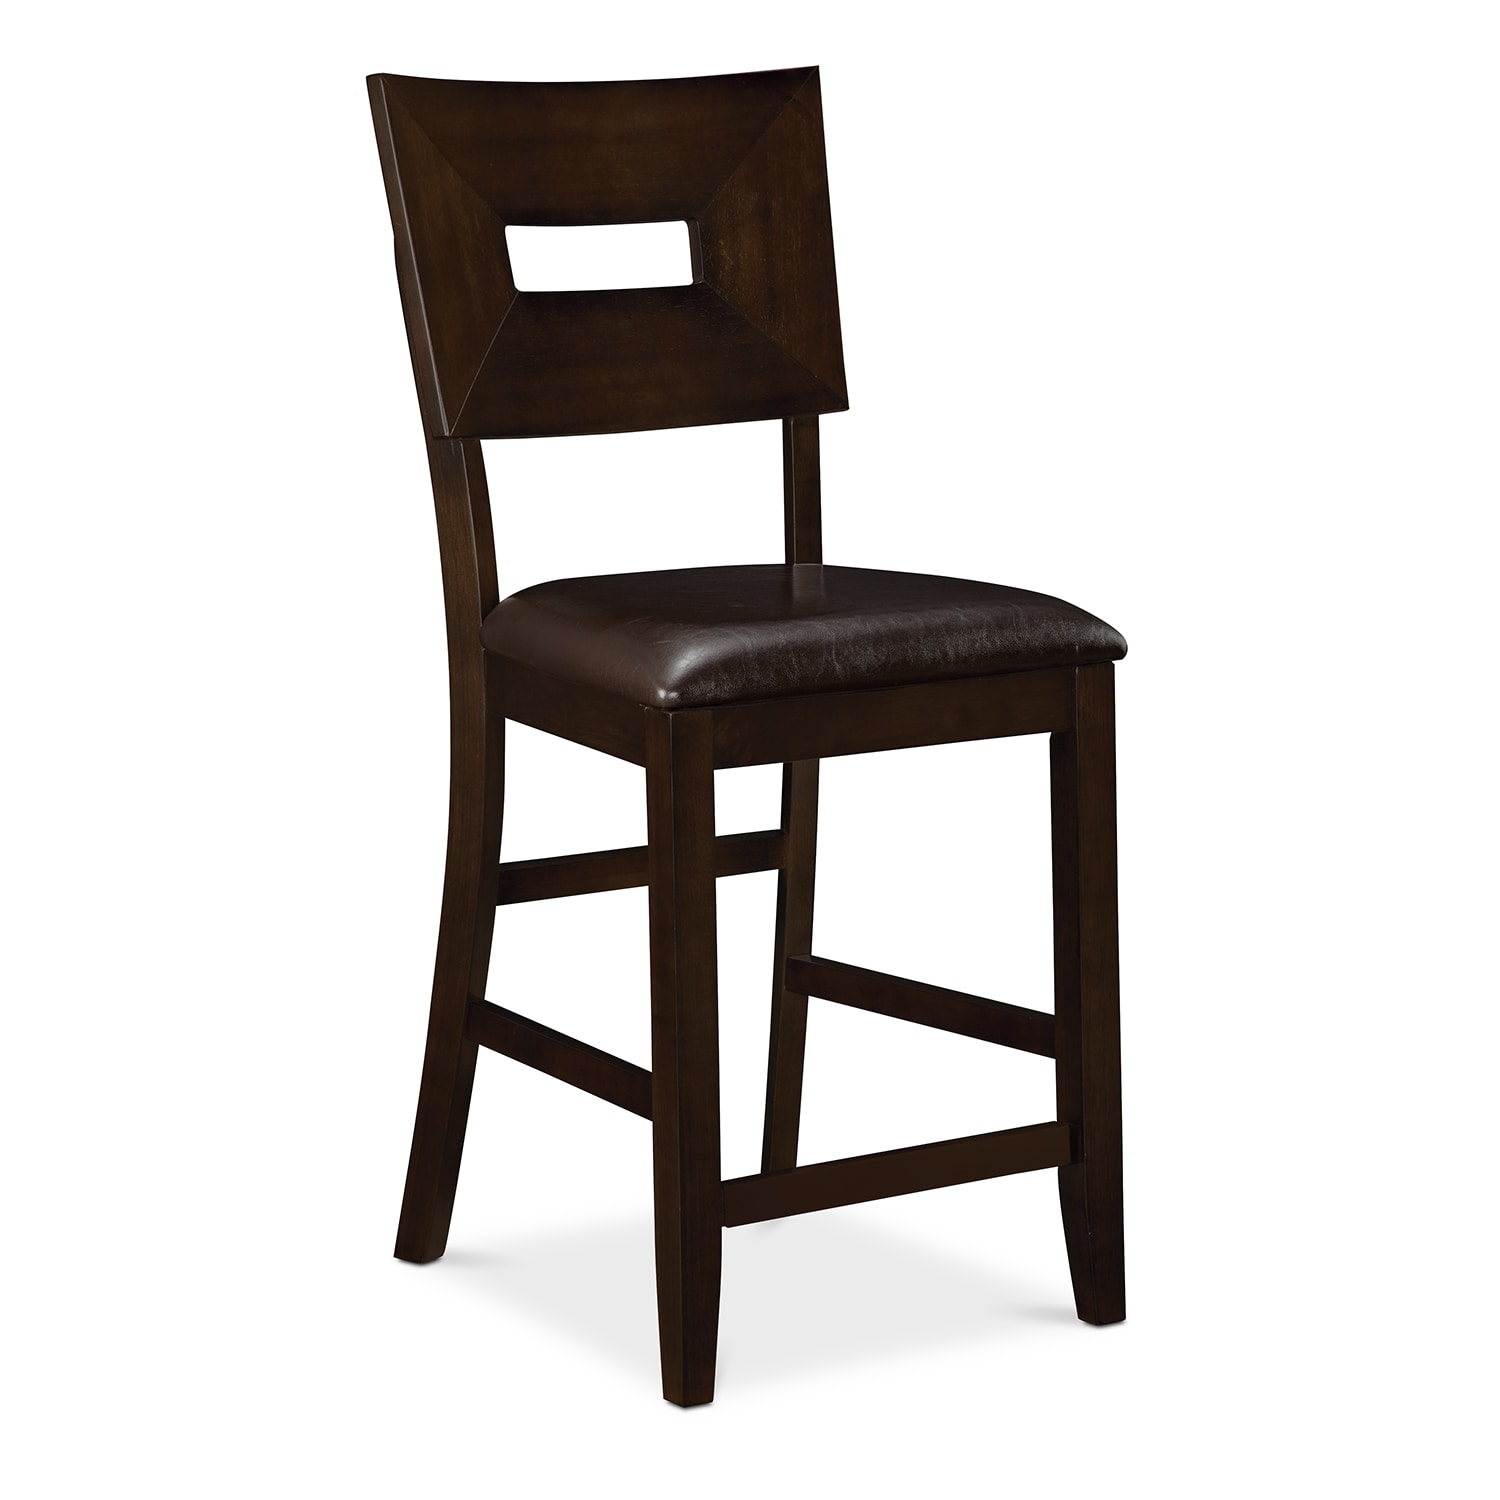 Dining Room Furniture - Blake II Counter-Height Stool